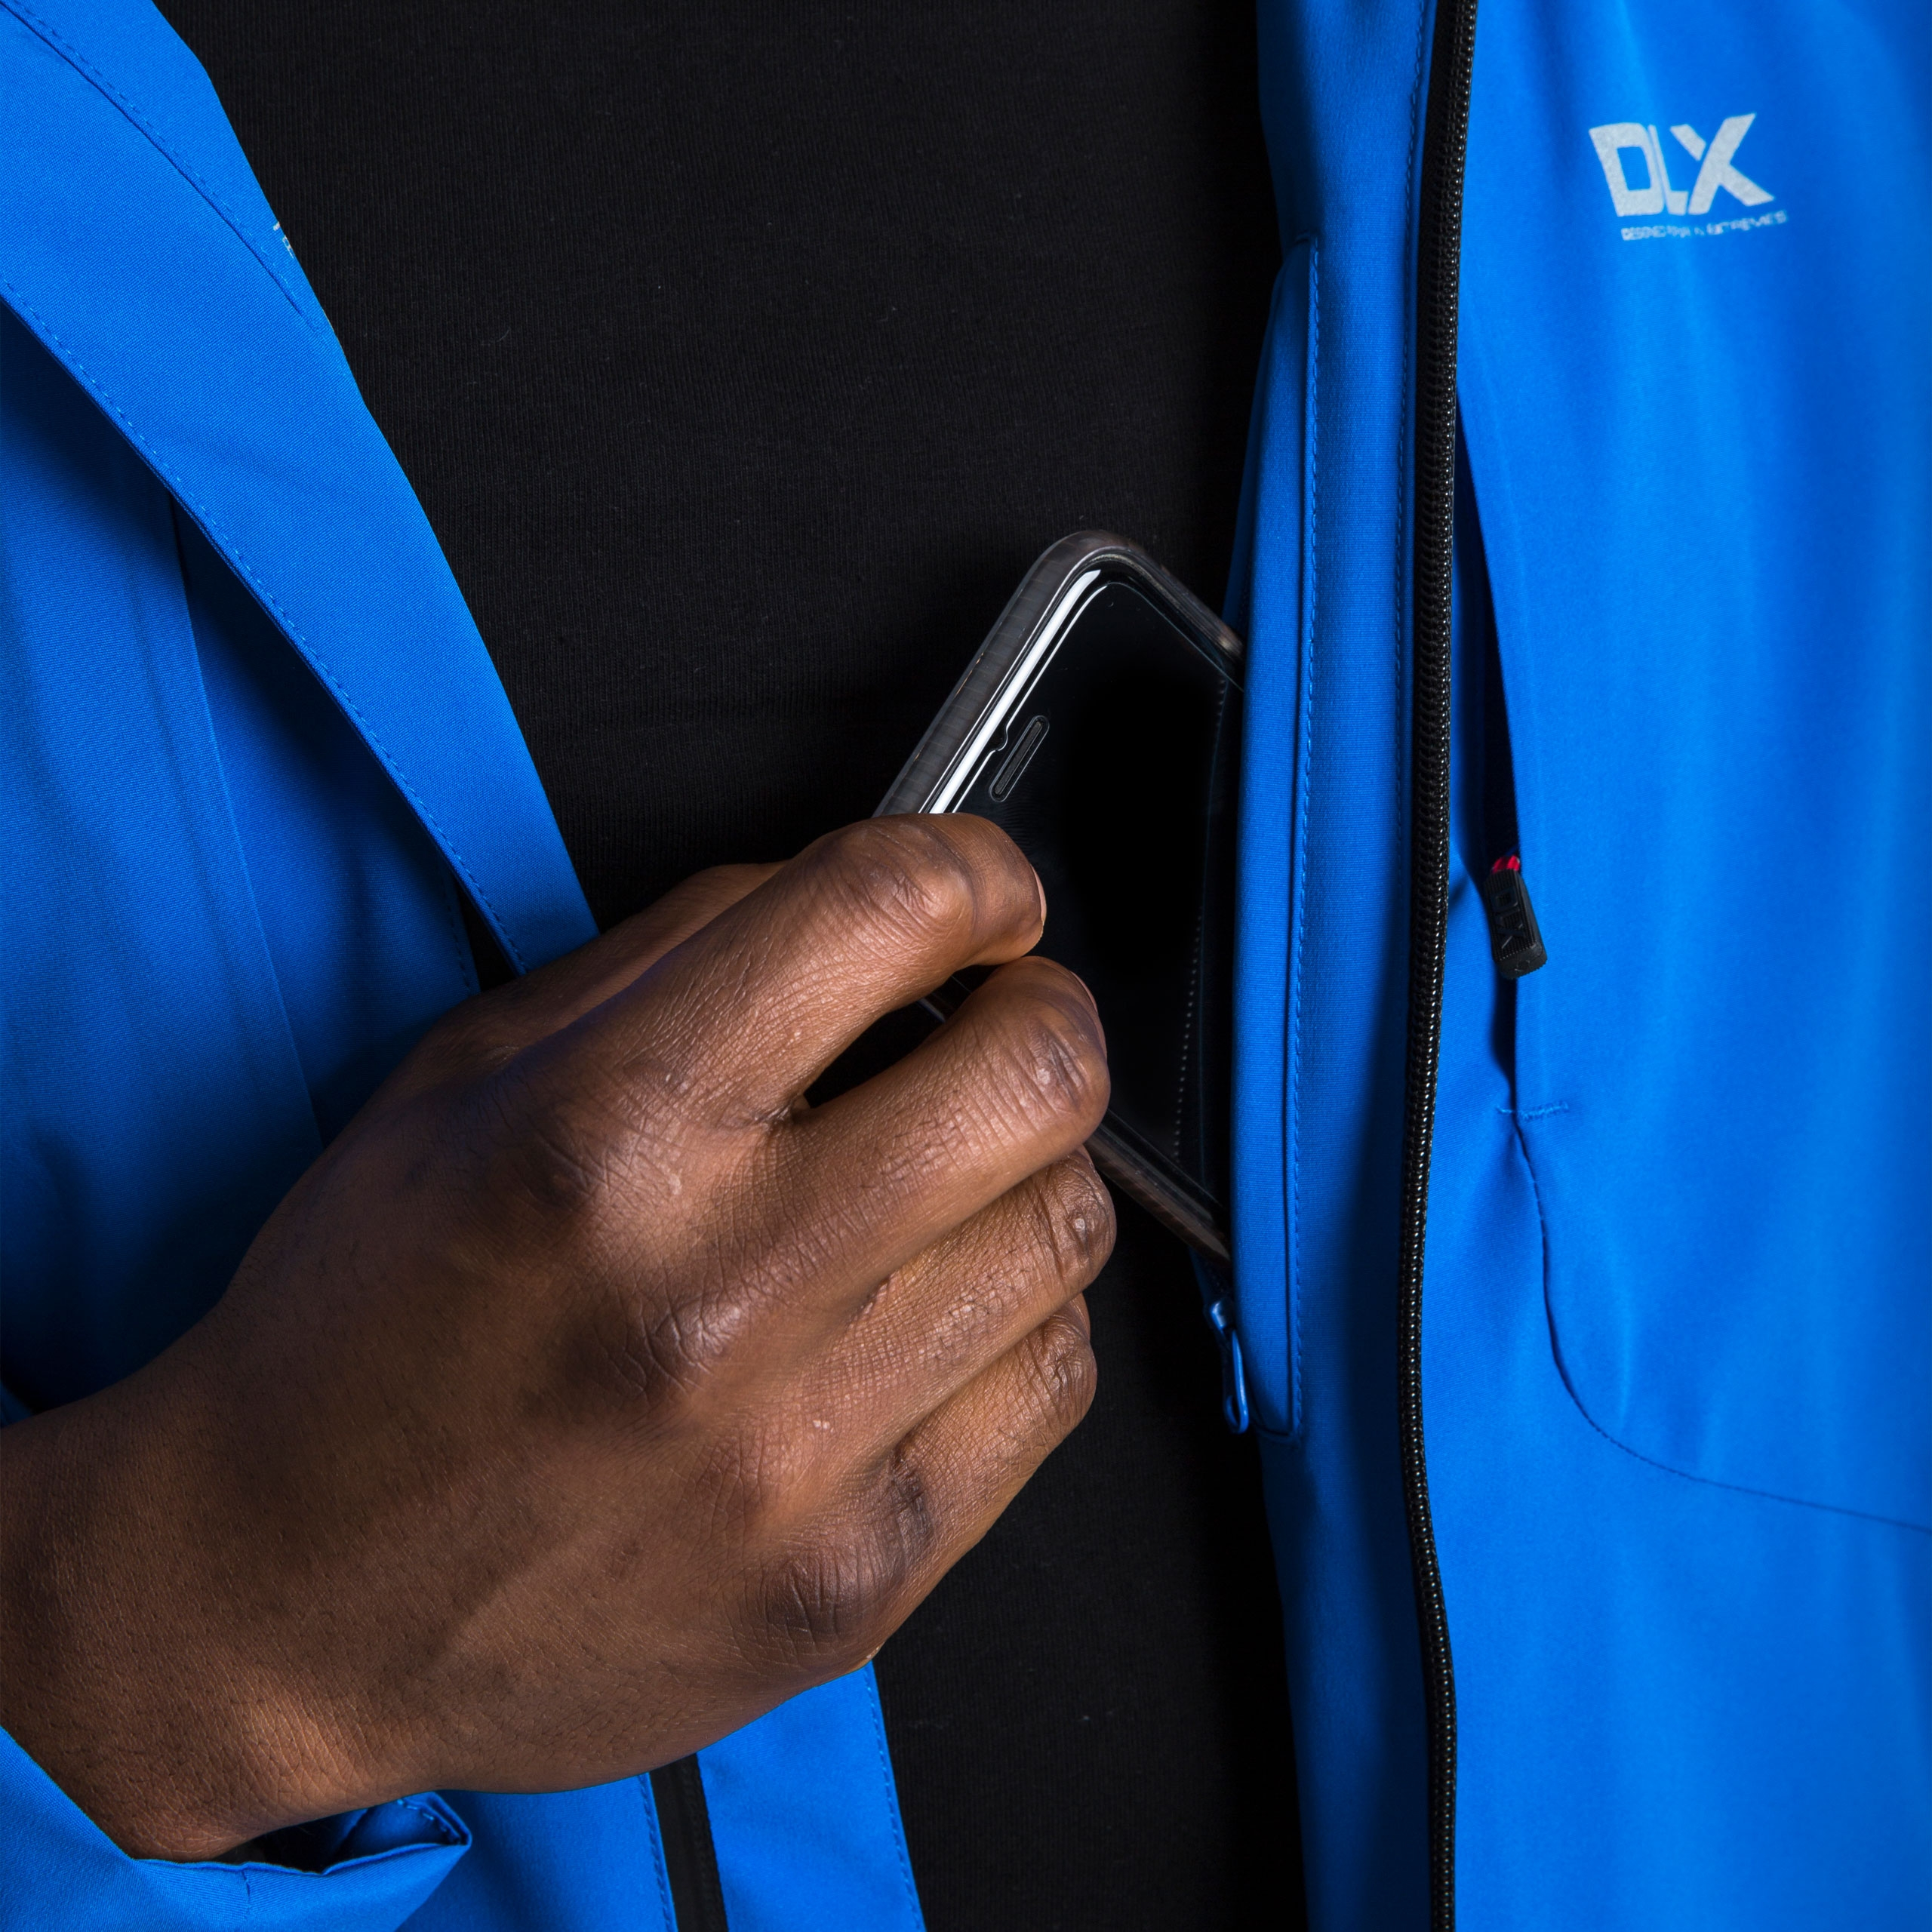 DLX-Kumar-DLX-Mens-Waterproof-Jacket-with-Hood-in-Blue-Red-amp-Black thumbnail 15